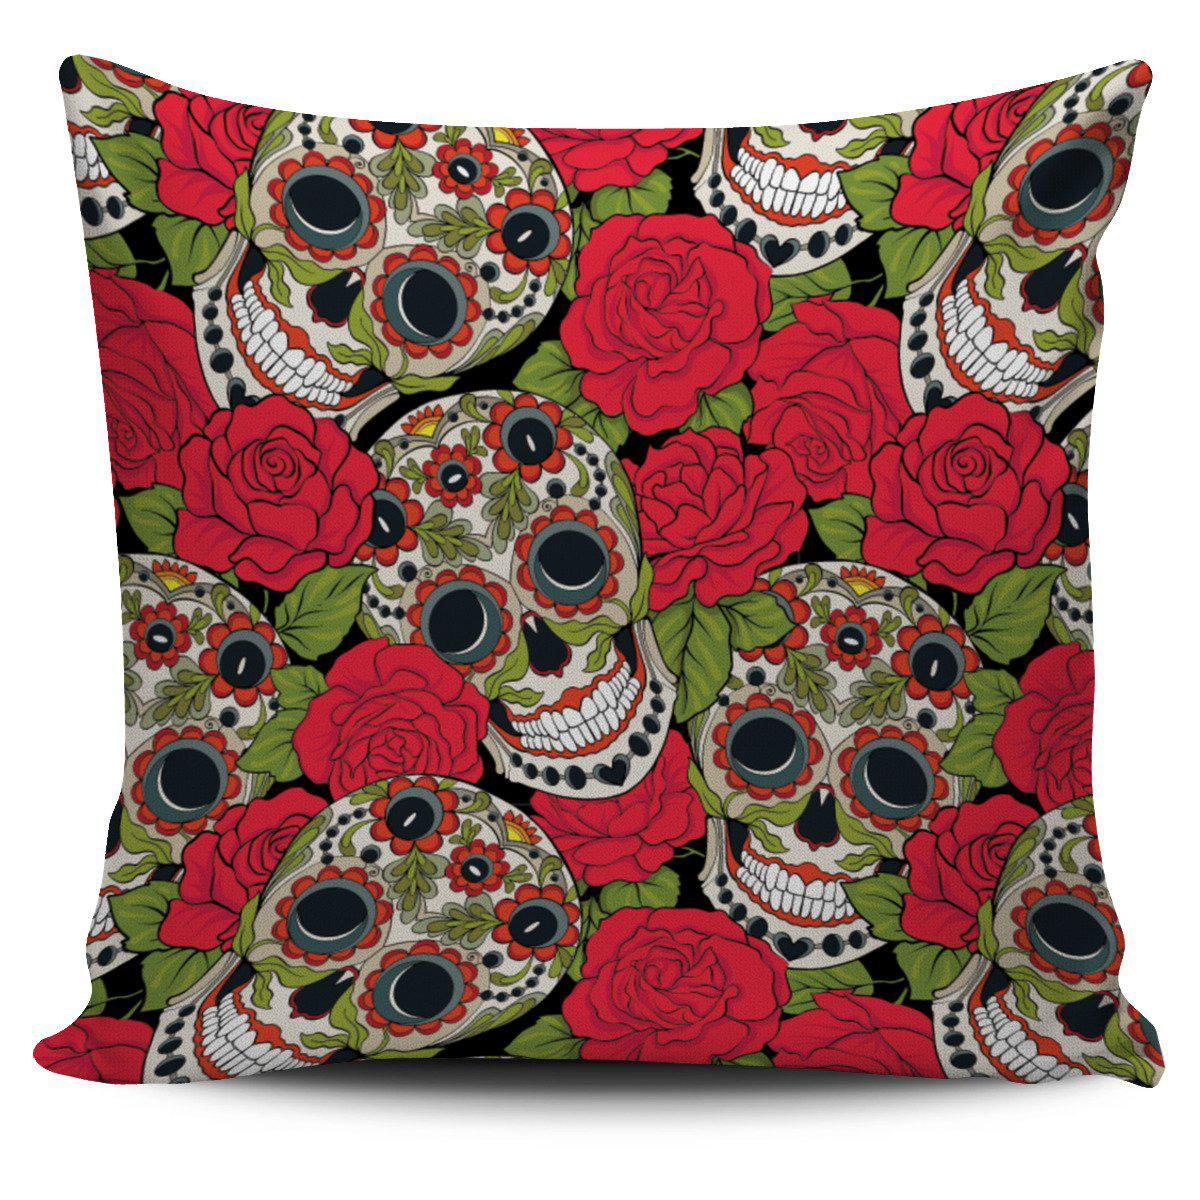 Shopeholic:Rose Skull Pillow Cover